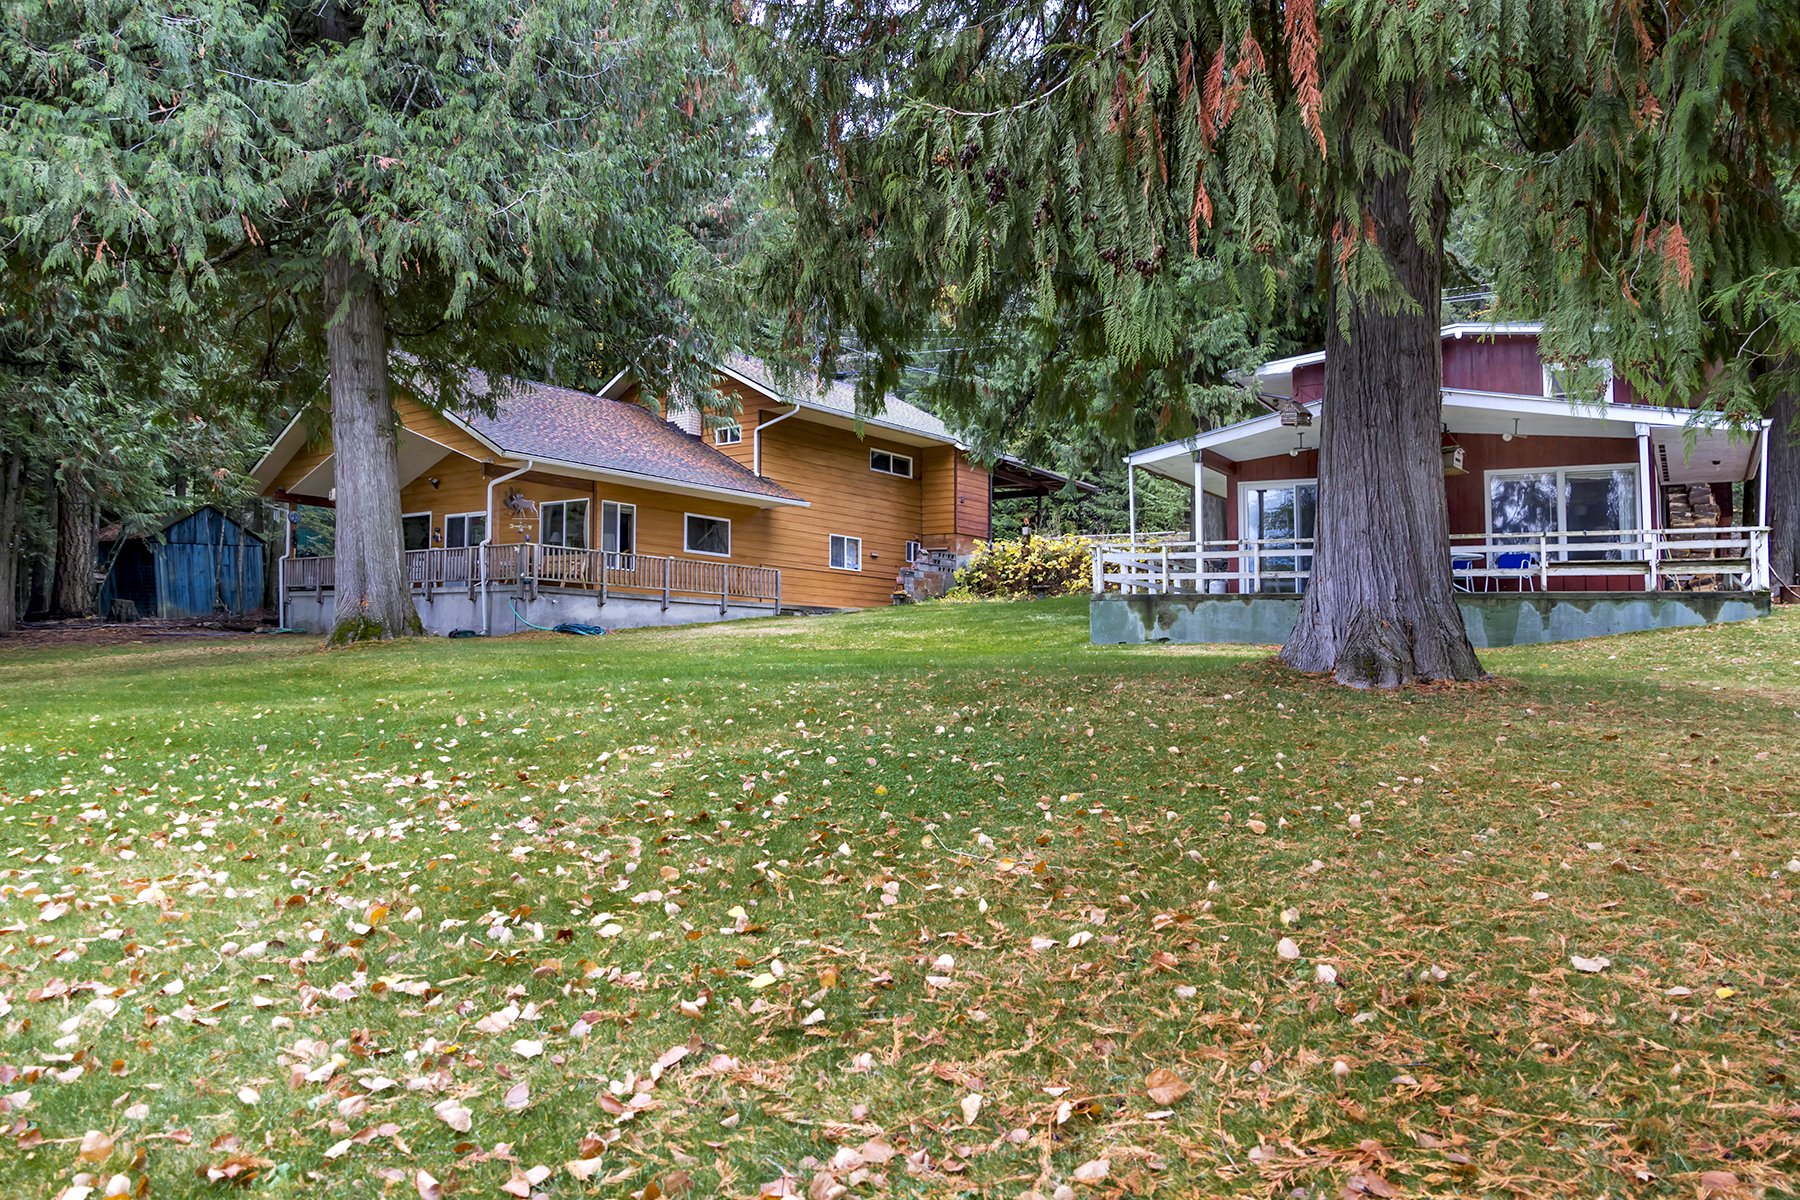 Casa Unifamiliar por un Venta en Two waterfront cabins on over 1 acre on Murphy Bay 2519 & 2529 Lakeshore Dr. Sagle, Idaho, 83860 Estados Unidos